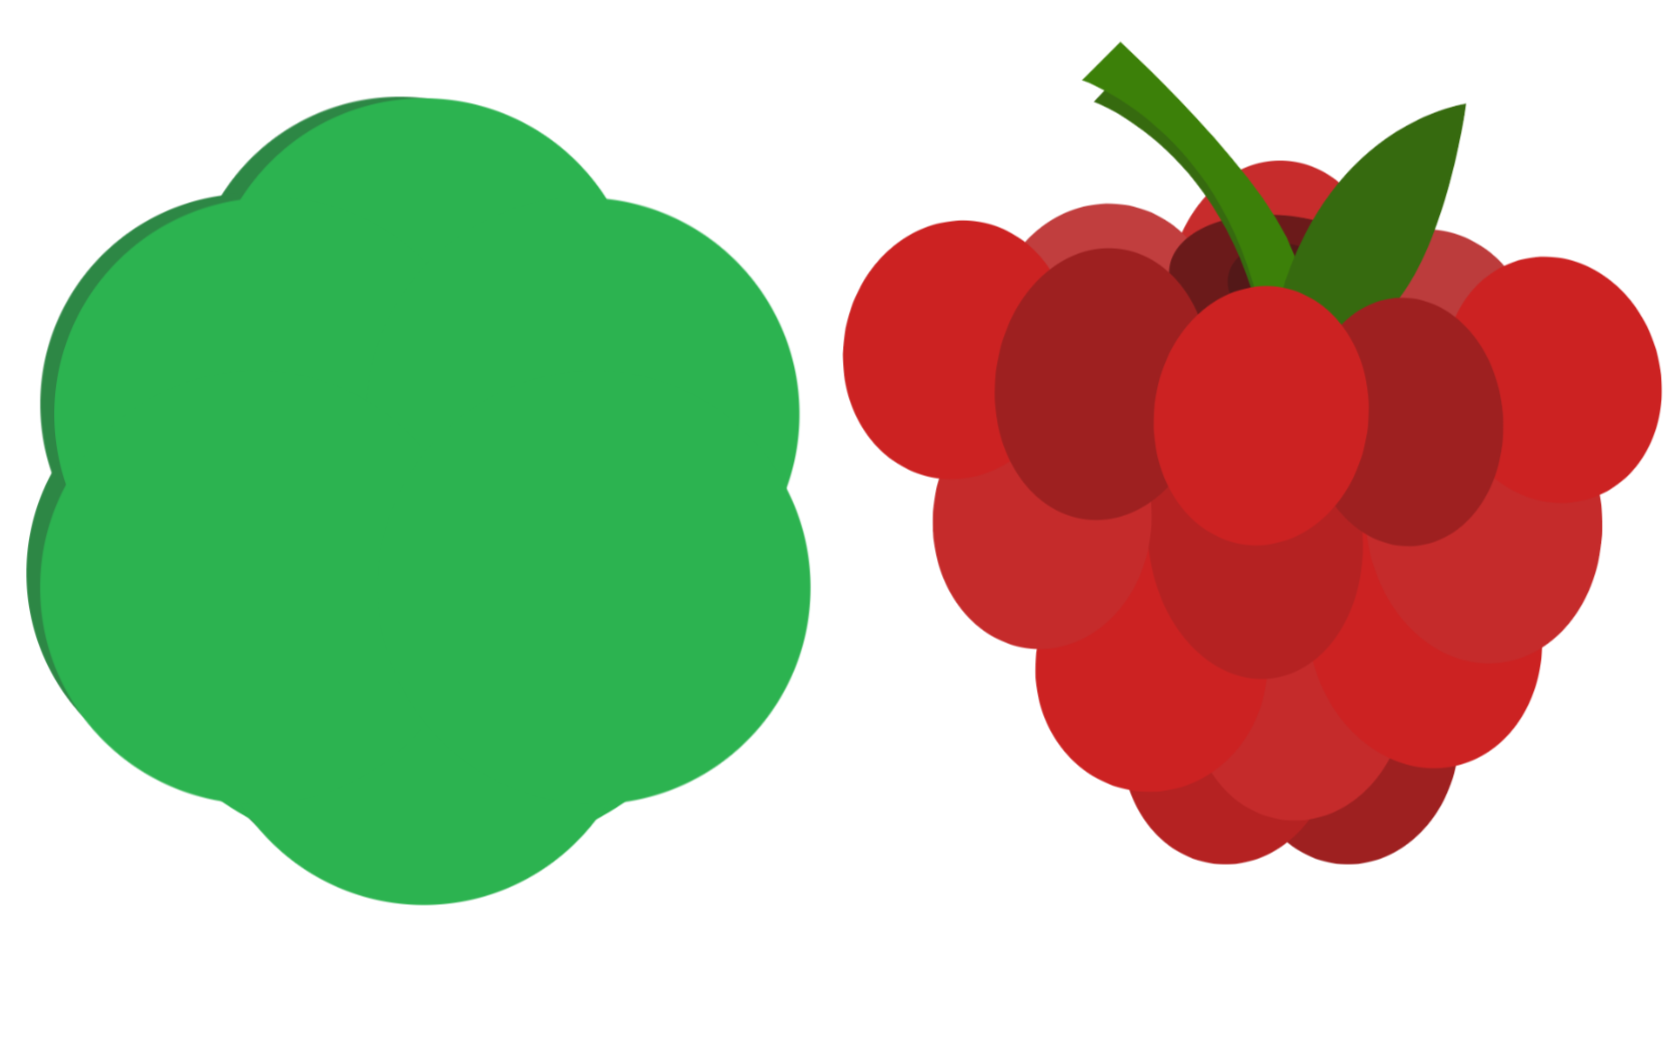 Berry clipart berry bush. Contest and redesign mopeio